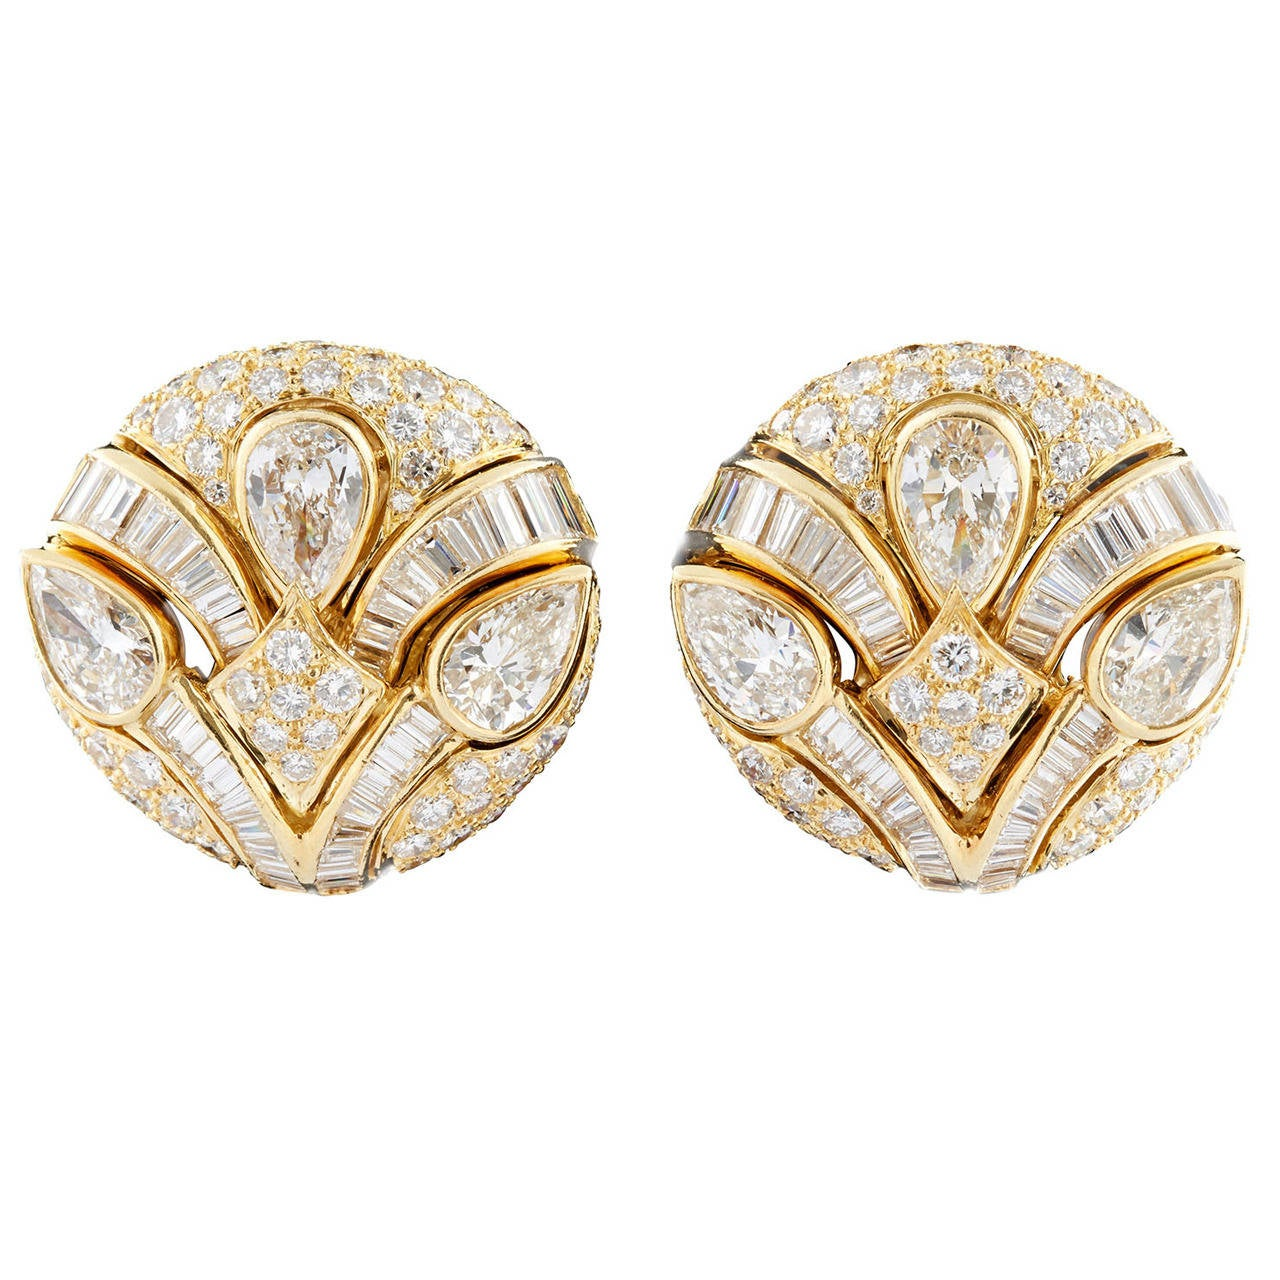 Impressive Bulgari Diamond Button Earrings 1